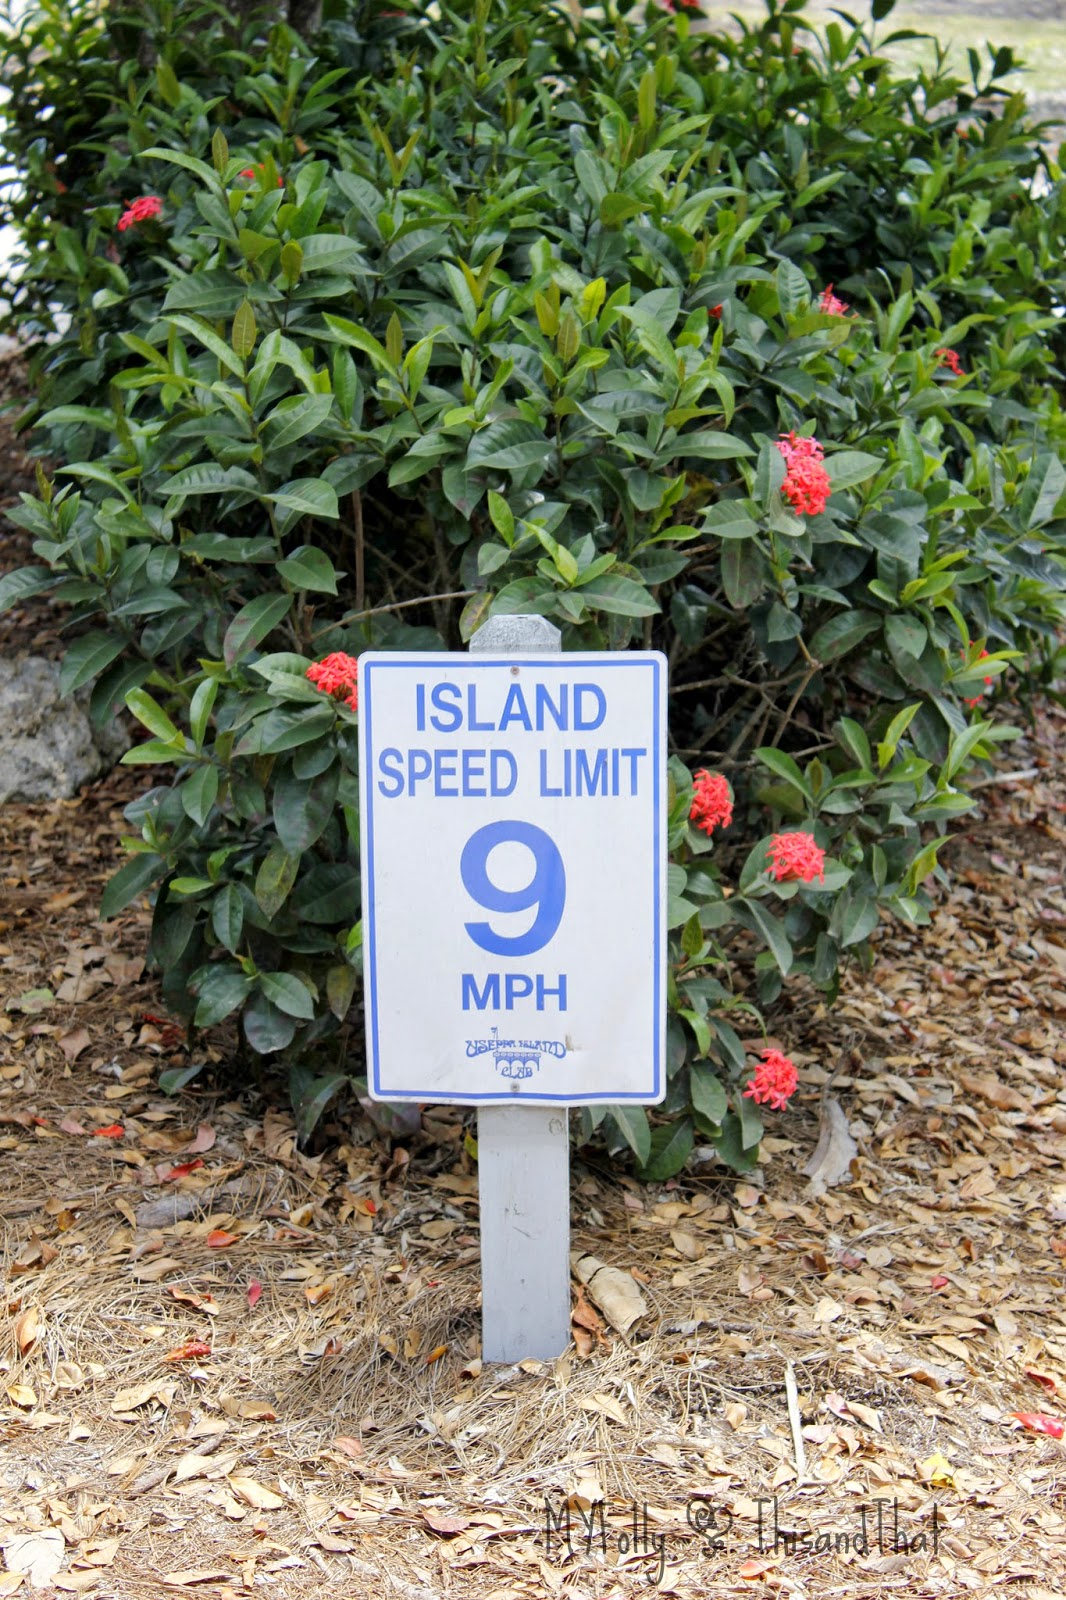 Cruise to Useppa Island/This and That #Vacation #VisitFlorida #Cruise